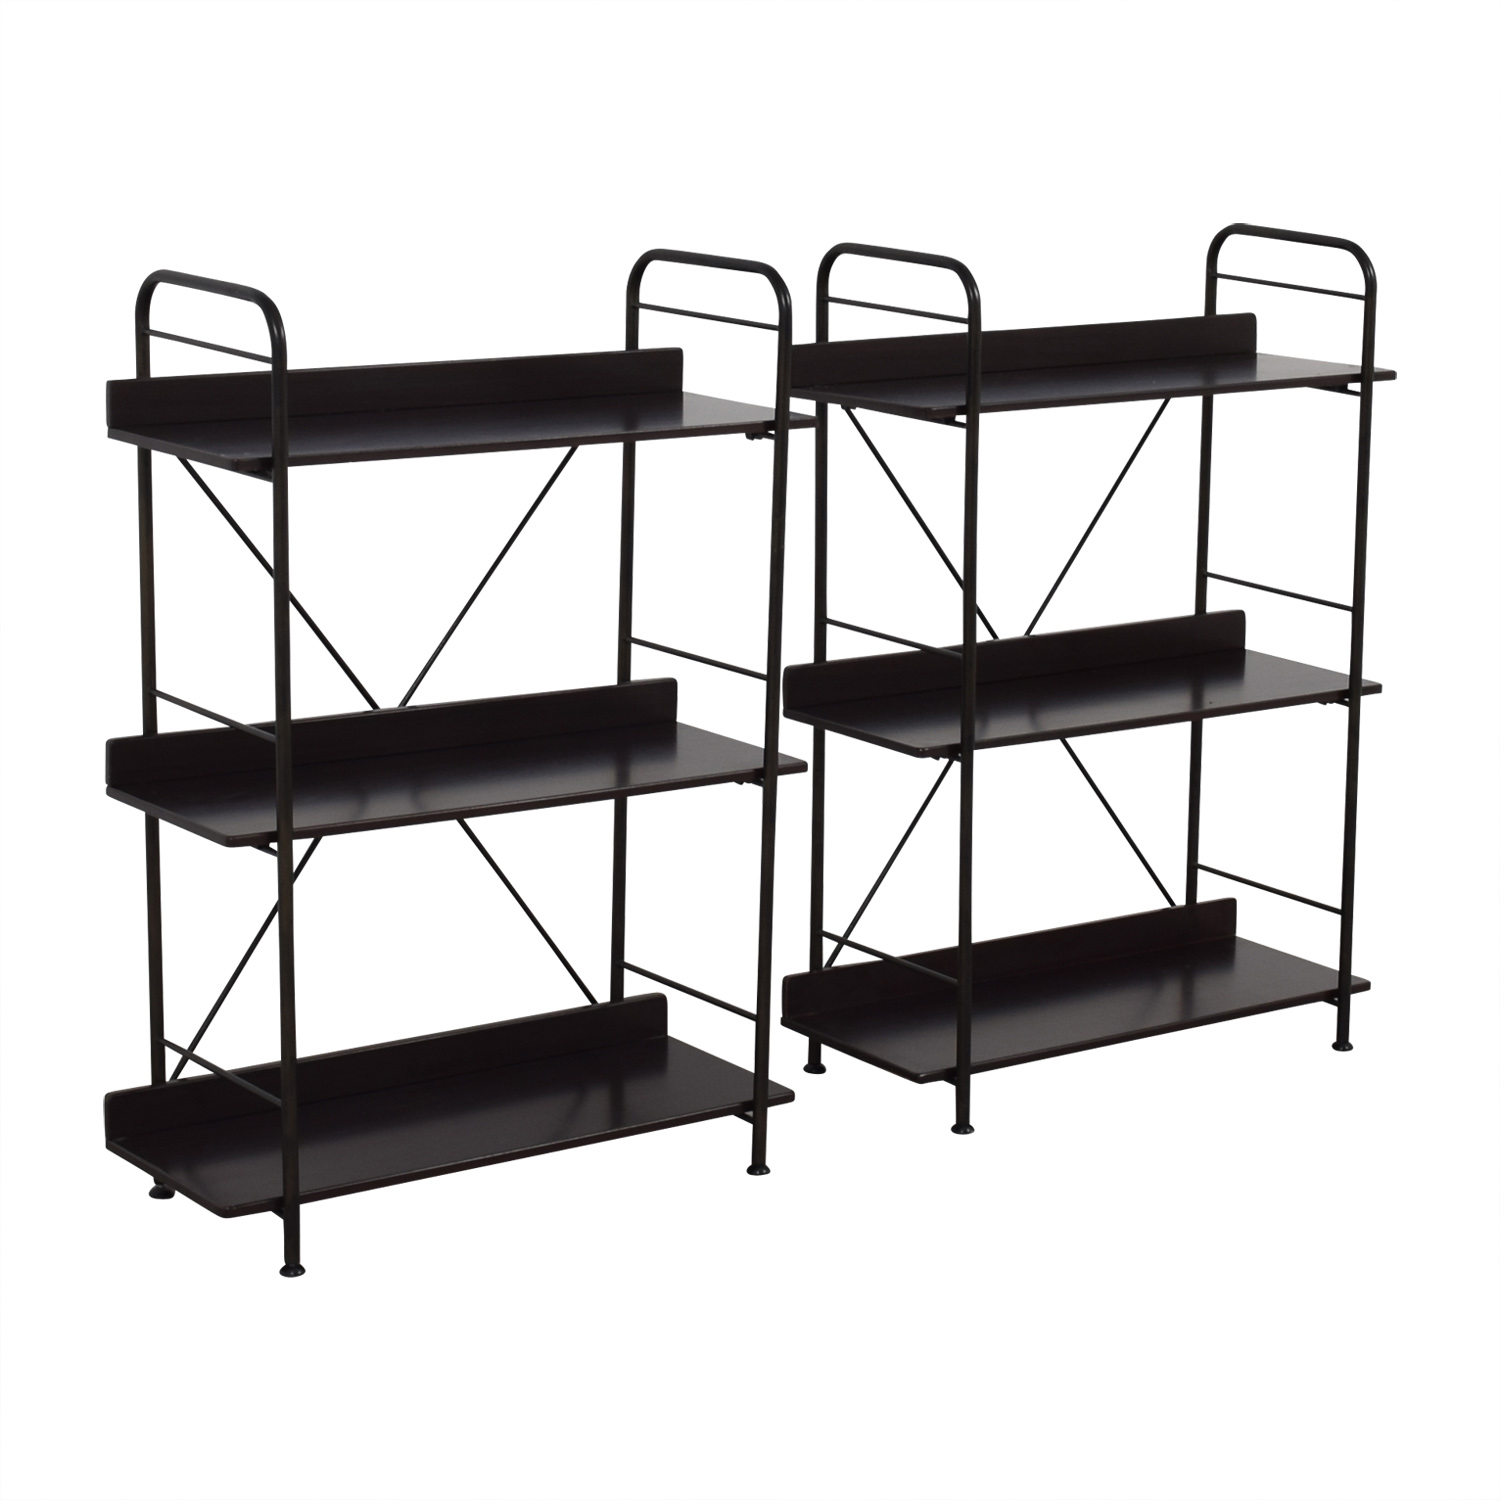 86 off ikea ikea black bookcases or storage shelves storage. Black Bedroom Furniture Sets. Home Design Ideas